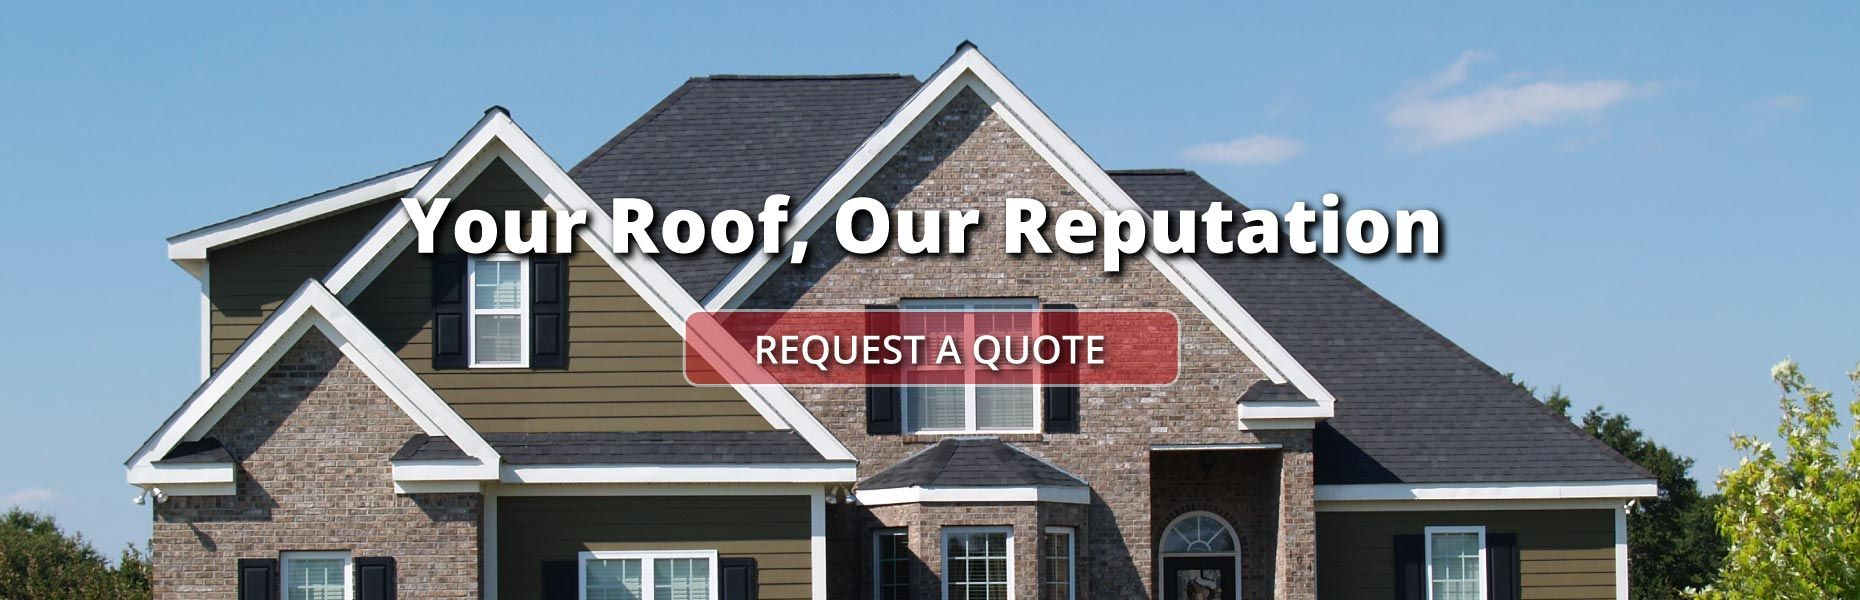 Your Roof, Our Reputation - Request a Quote - New shingle roof